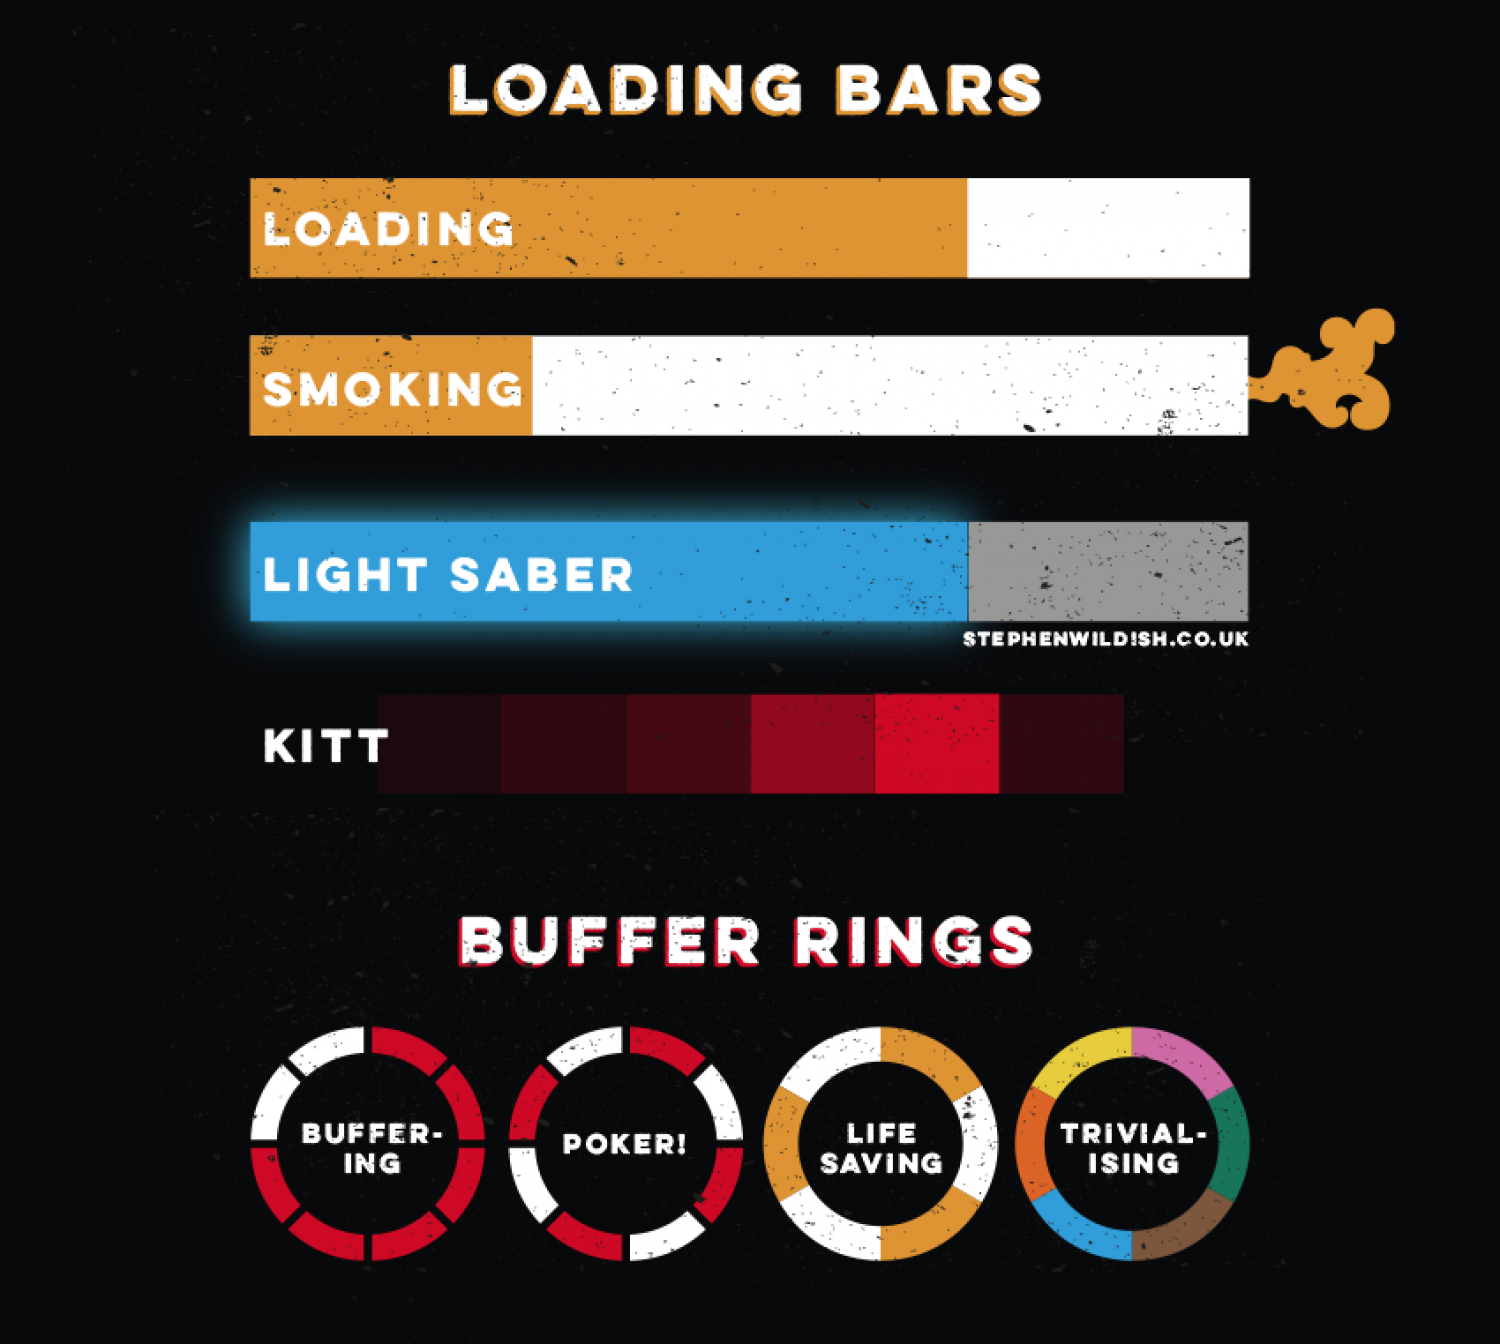 Loading bars and buffer rings Infographic